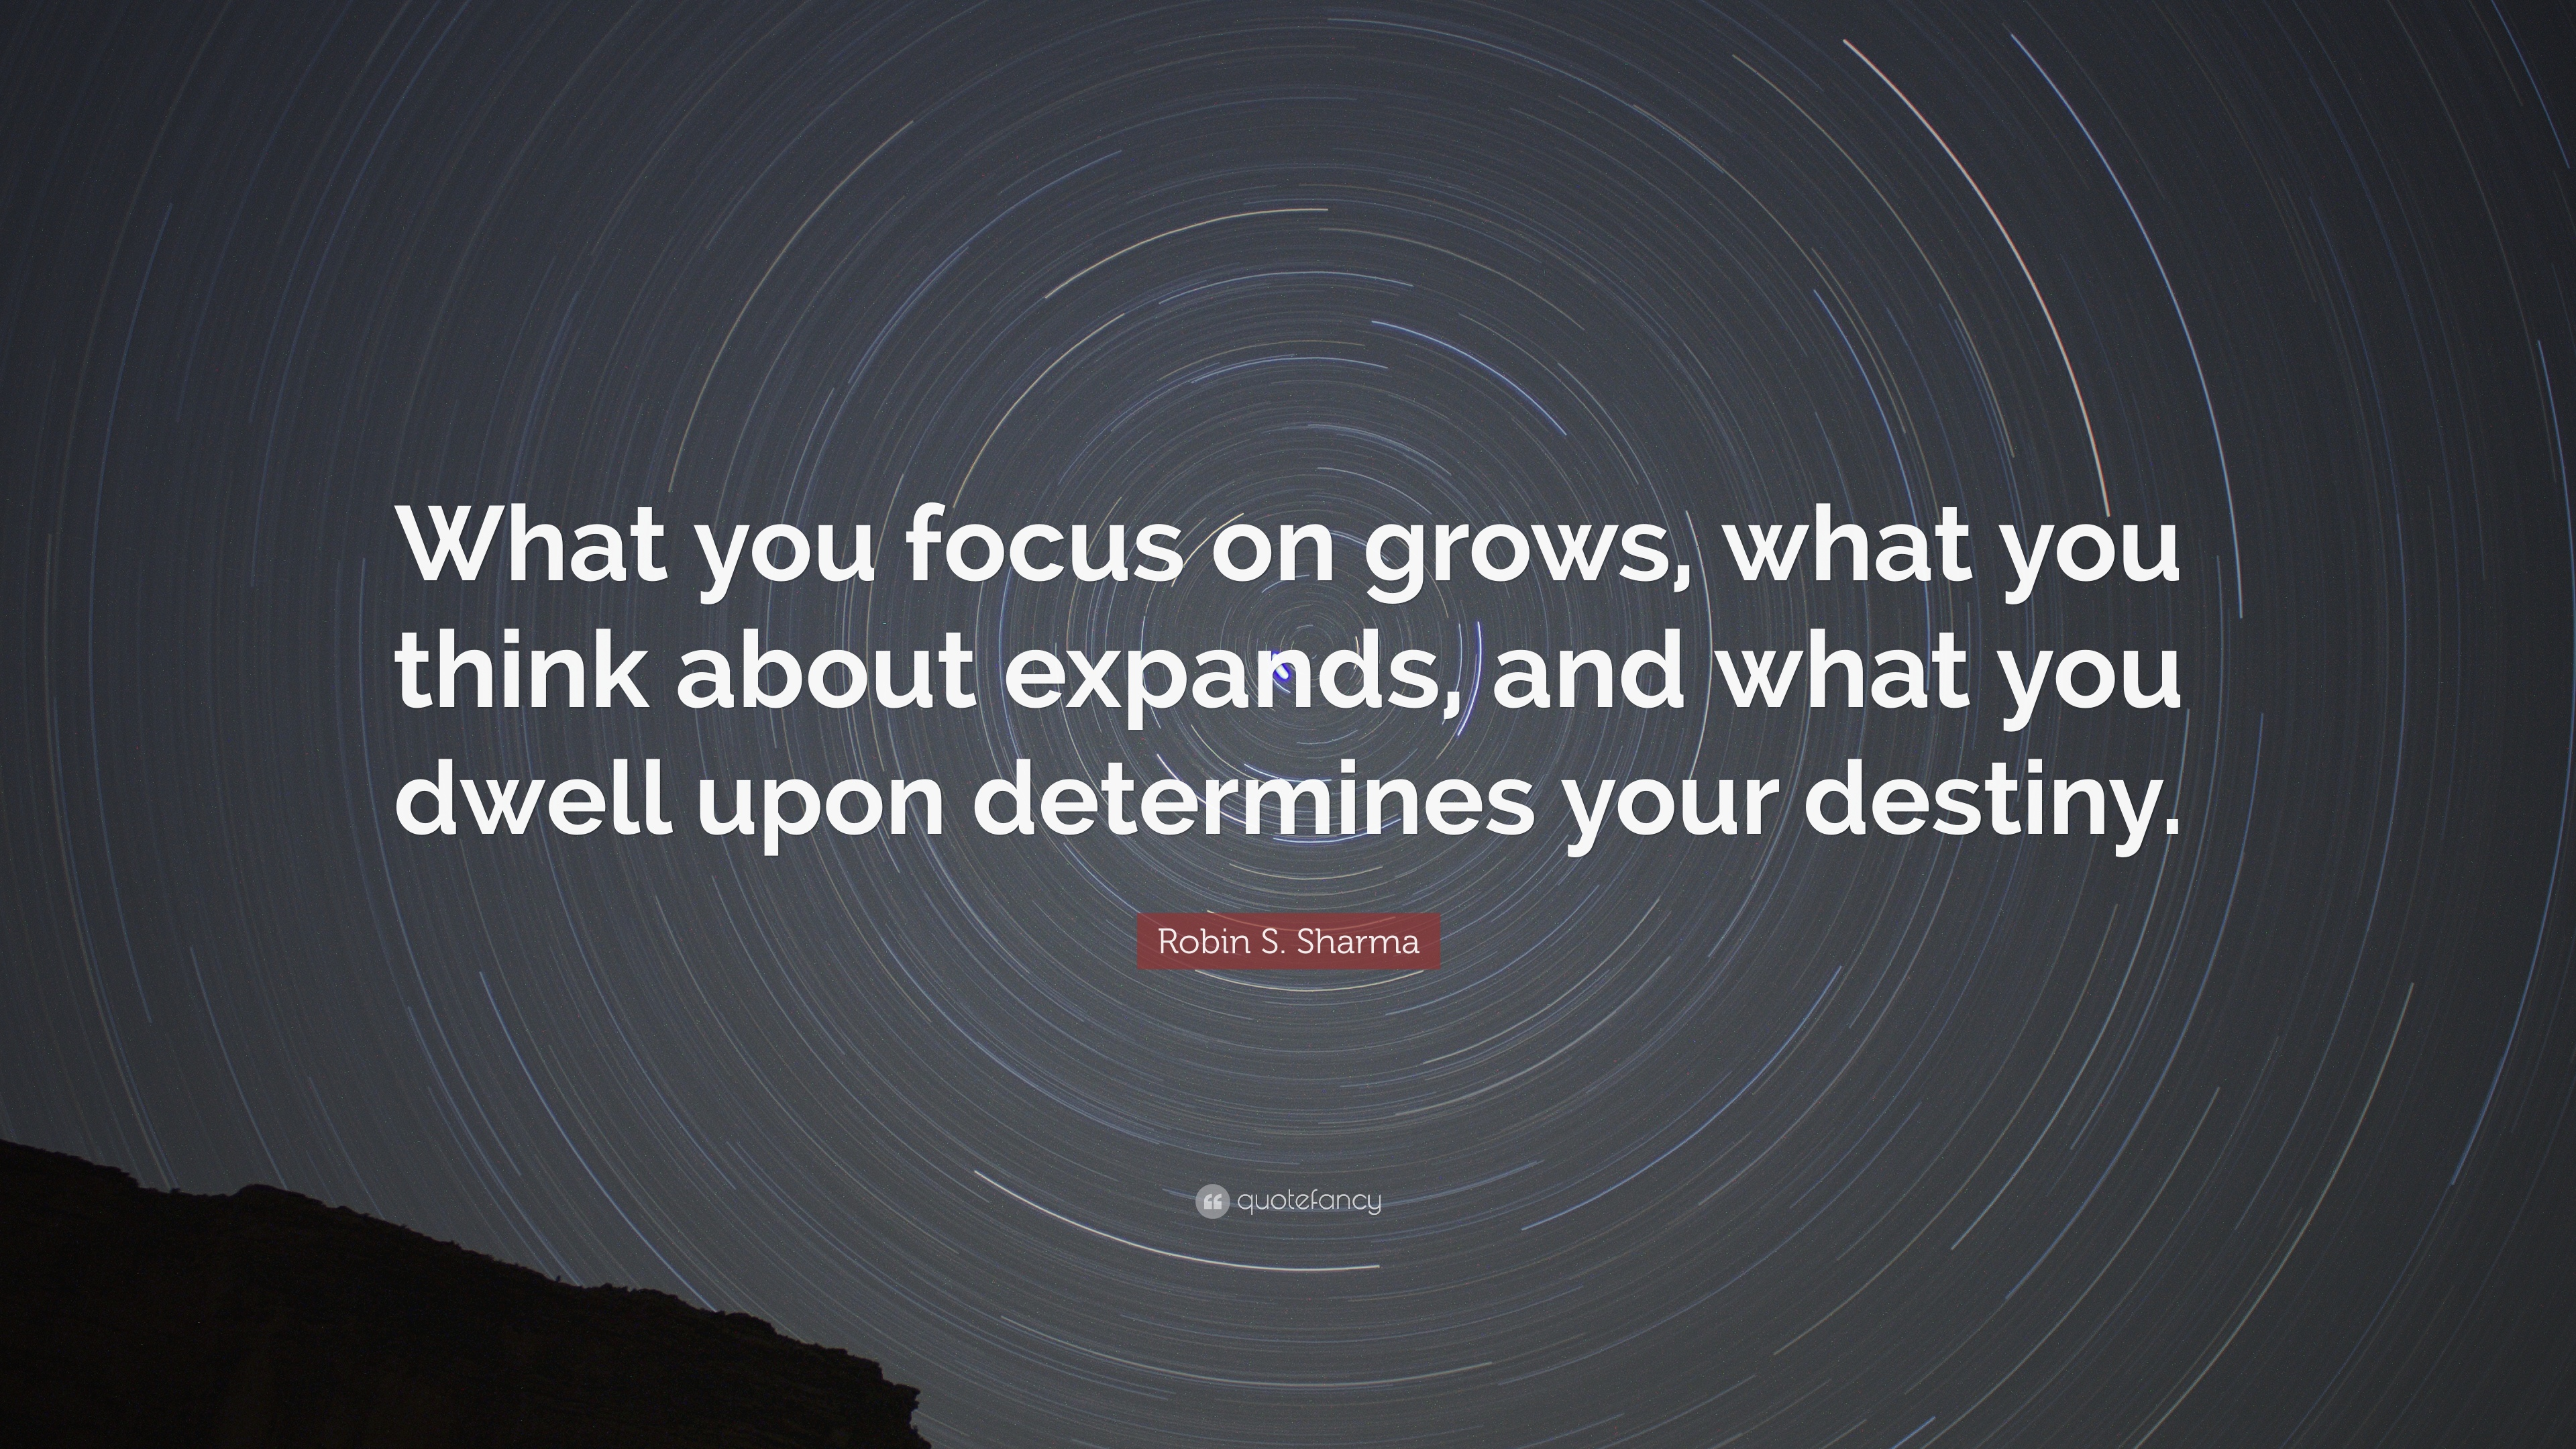 robin s  sharma quote   u201cwhat you focus on grows  what you think about expands  and what you